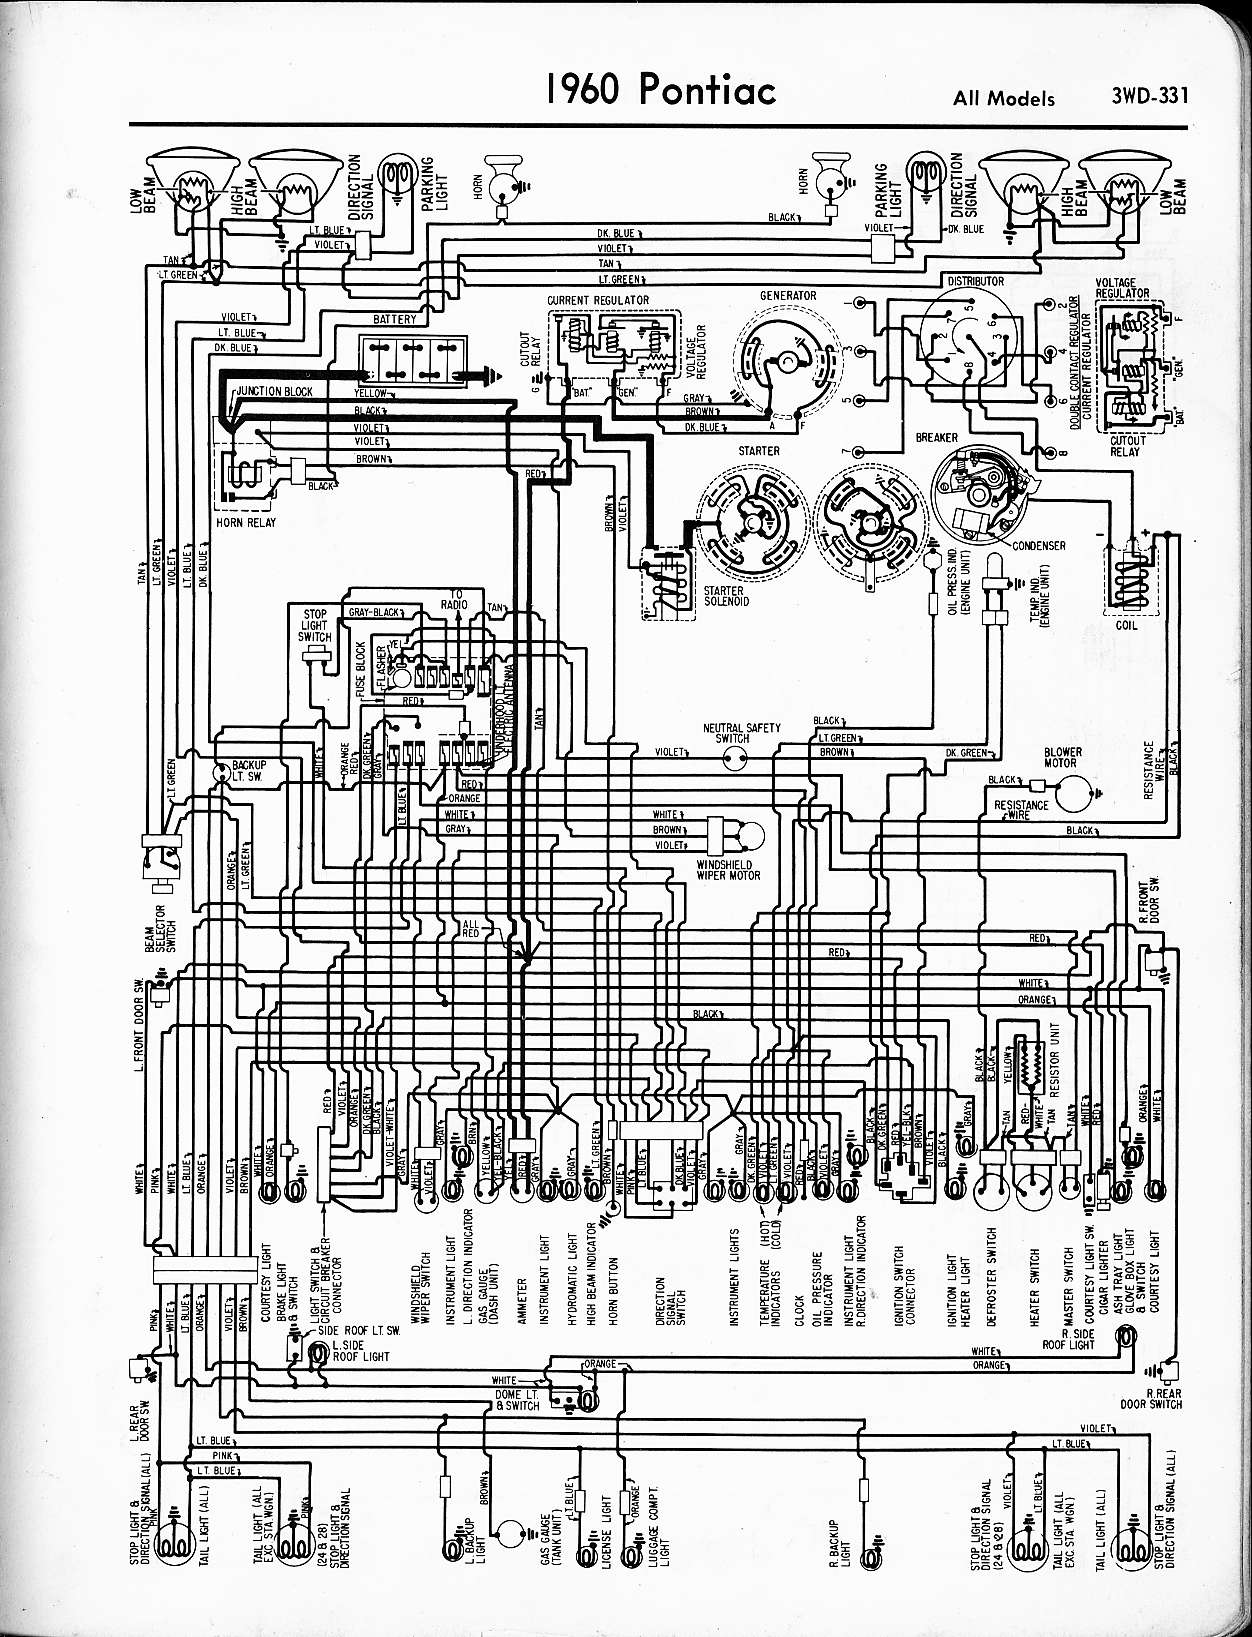 1974 Oldsmobile Omega Wiring Diagram Trusted Diagrams Pontiac Ventura Info U2022 Rh Datagrind Co 1973 1977